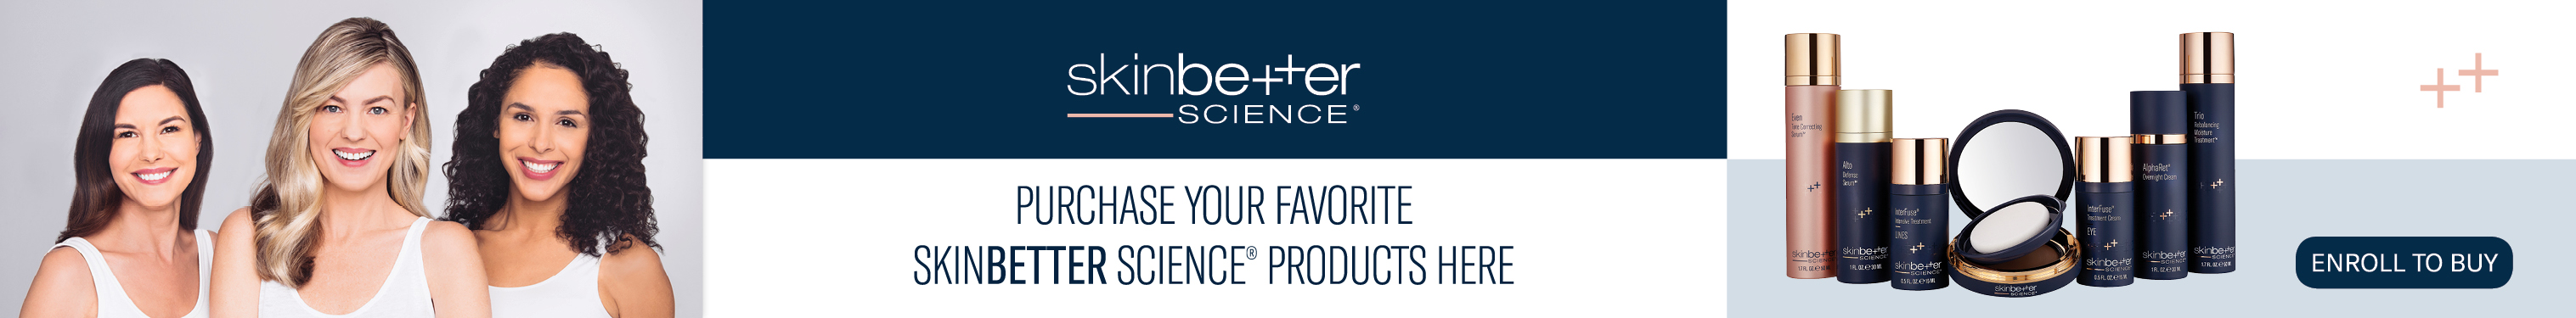 Shop skinbetter products